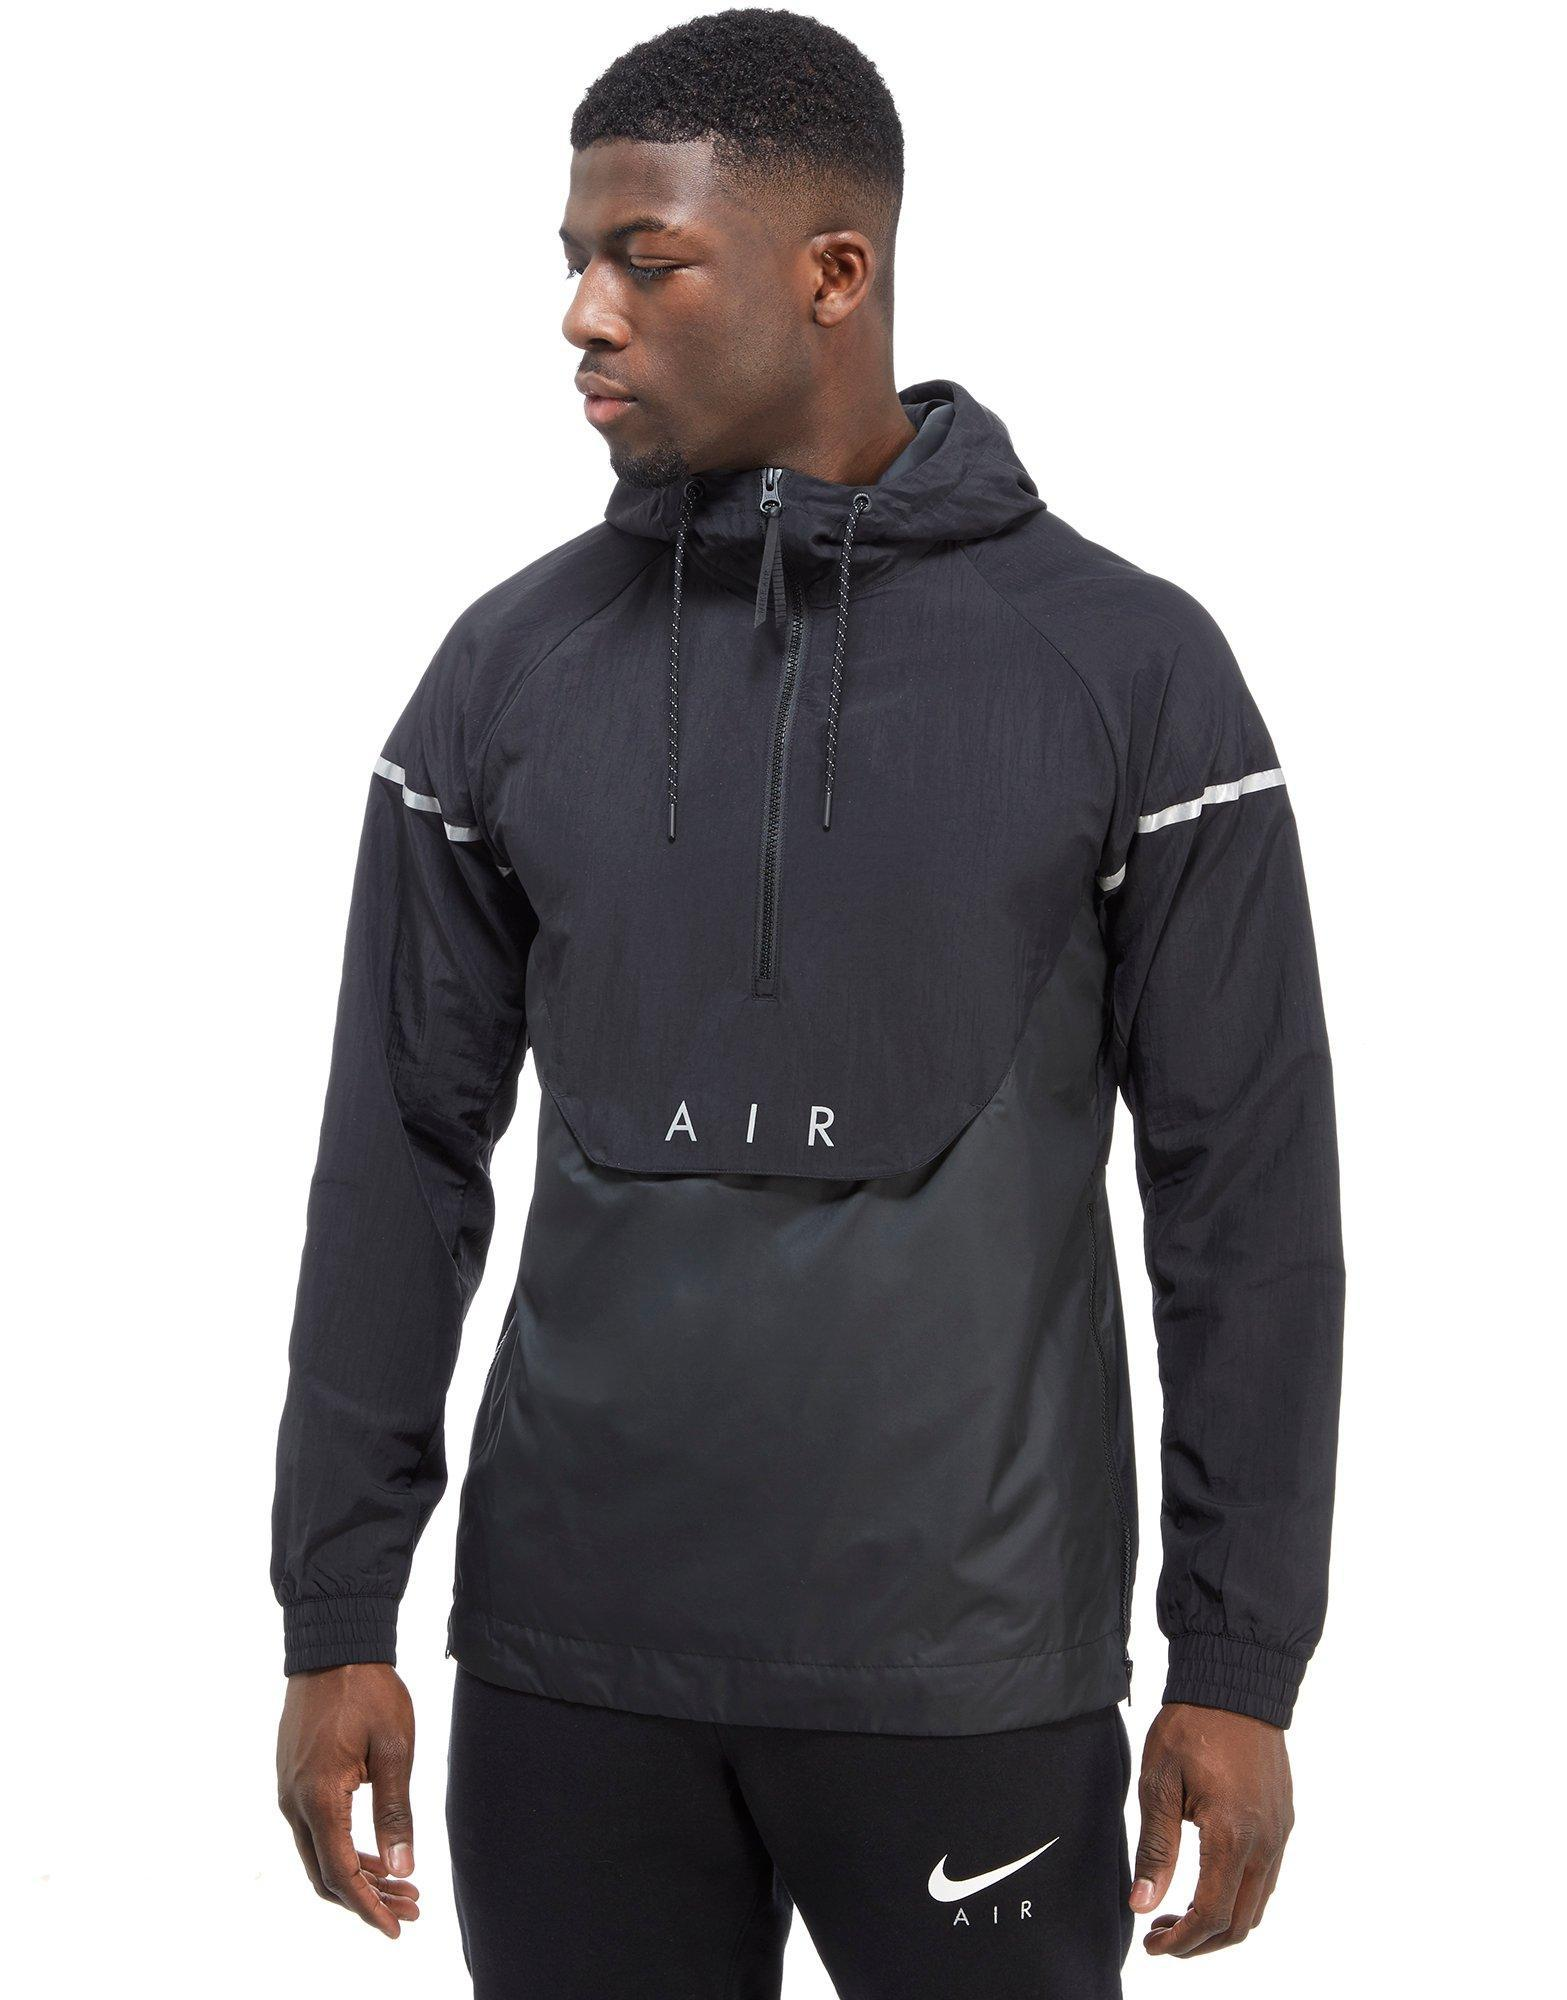 masculino Isaac muerte  Nike Synthetic Air Hybrid 1/2 Zip Woven Jacket in Black for Men - Lyst